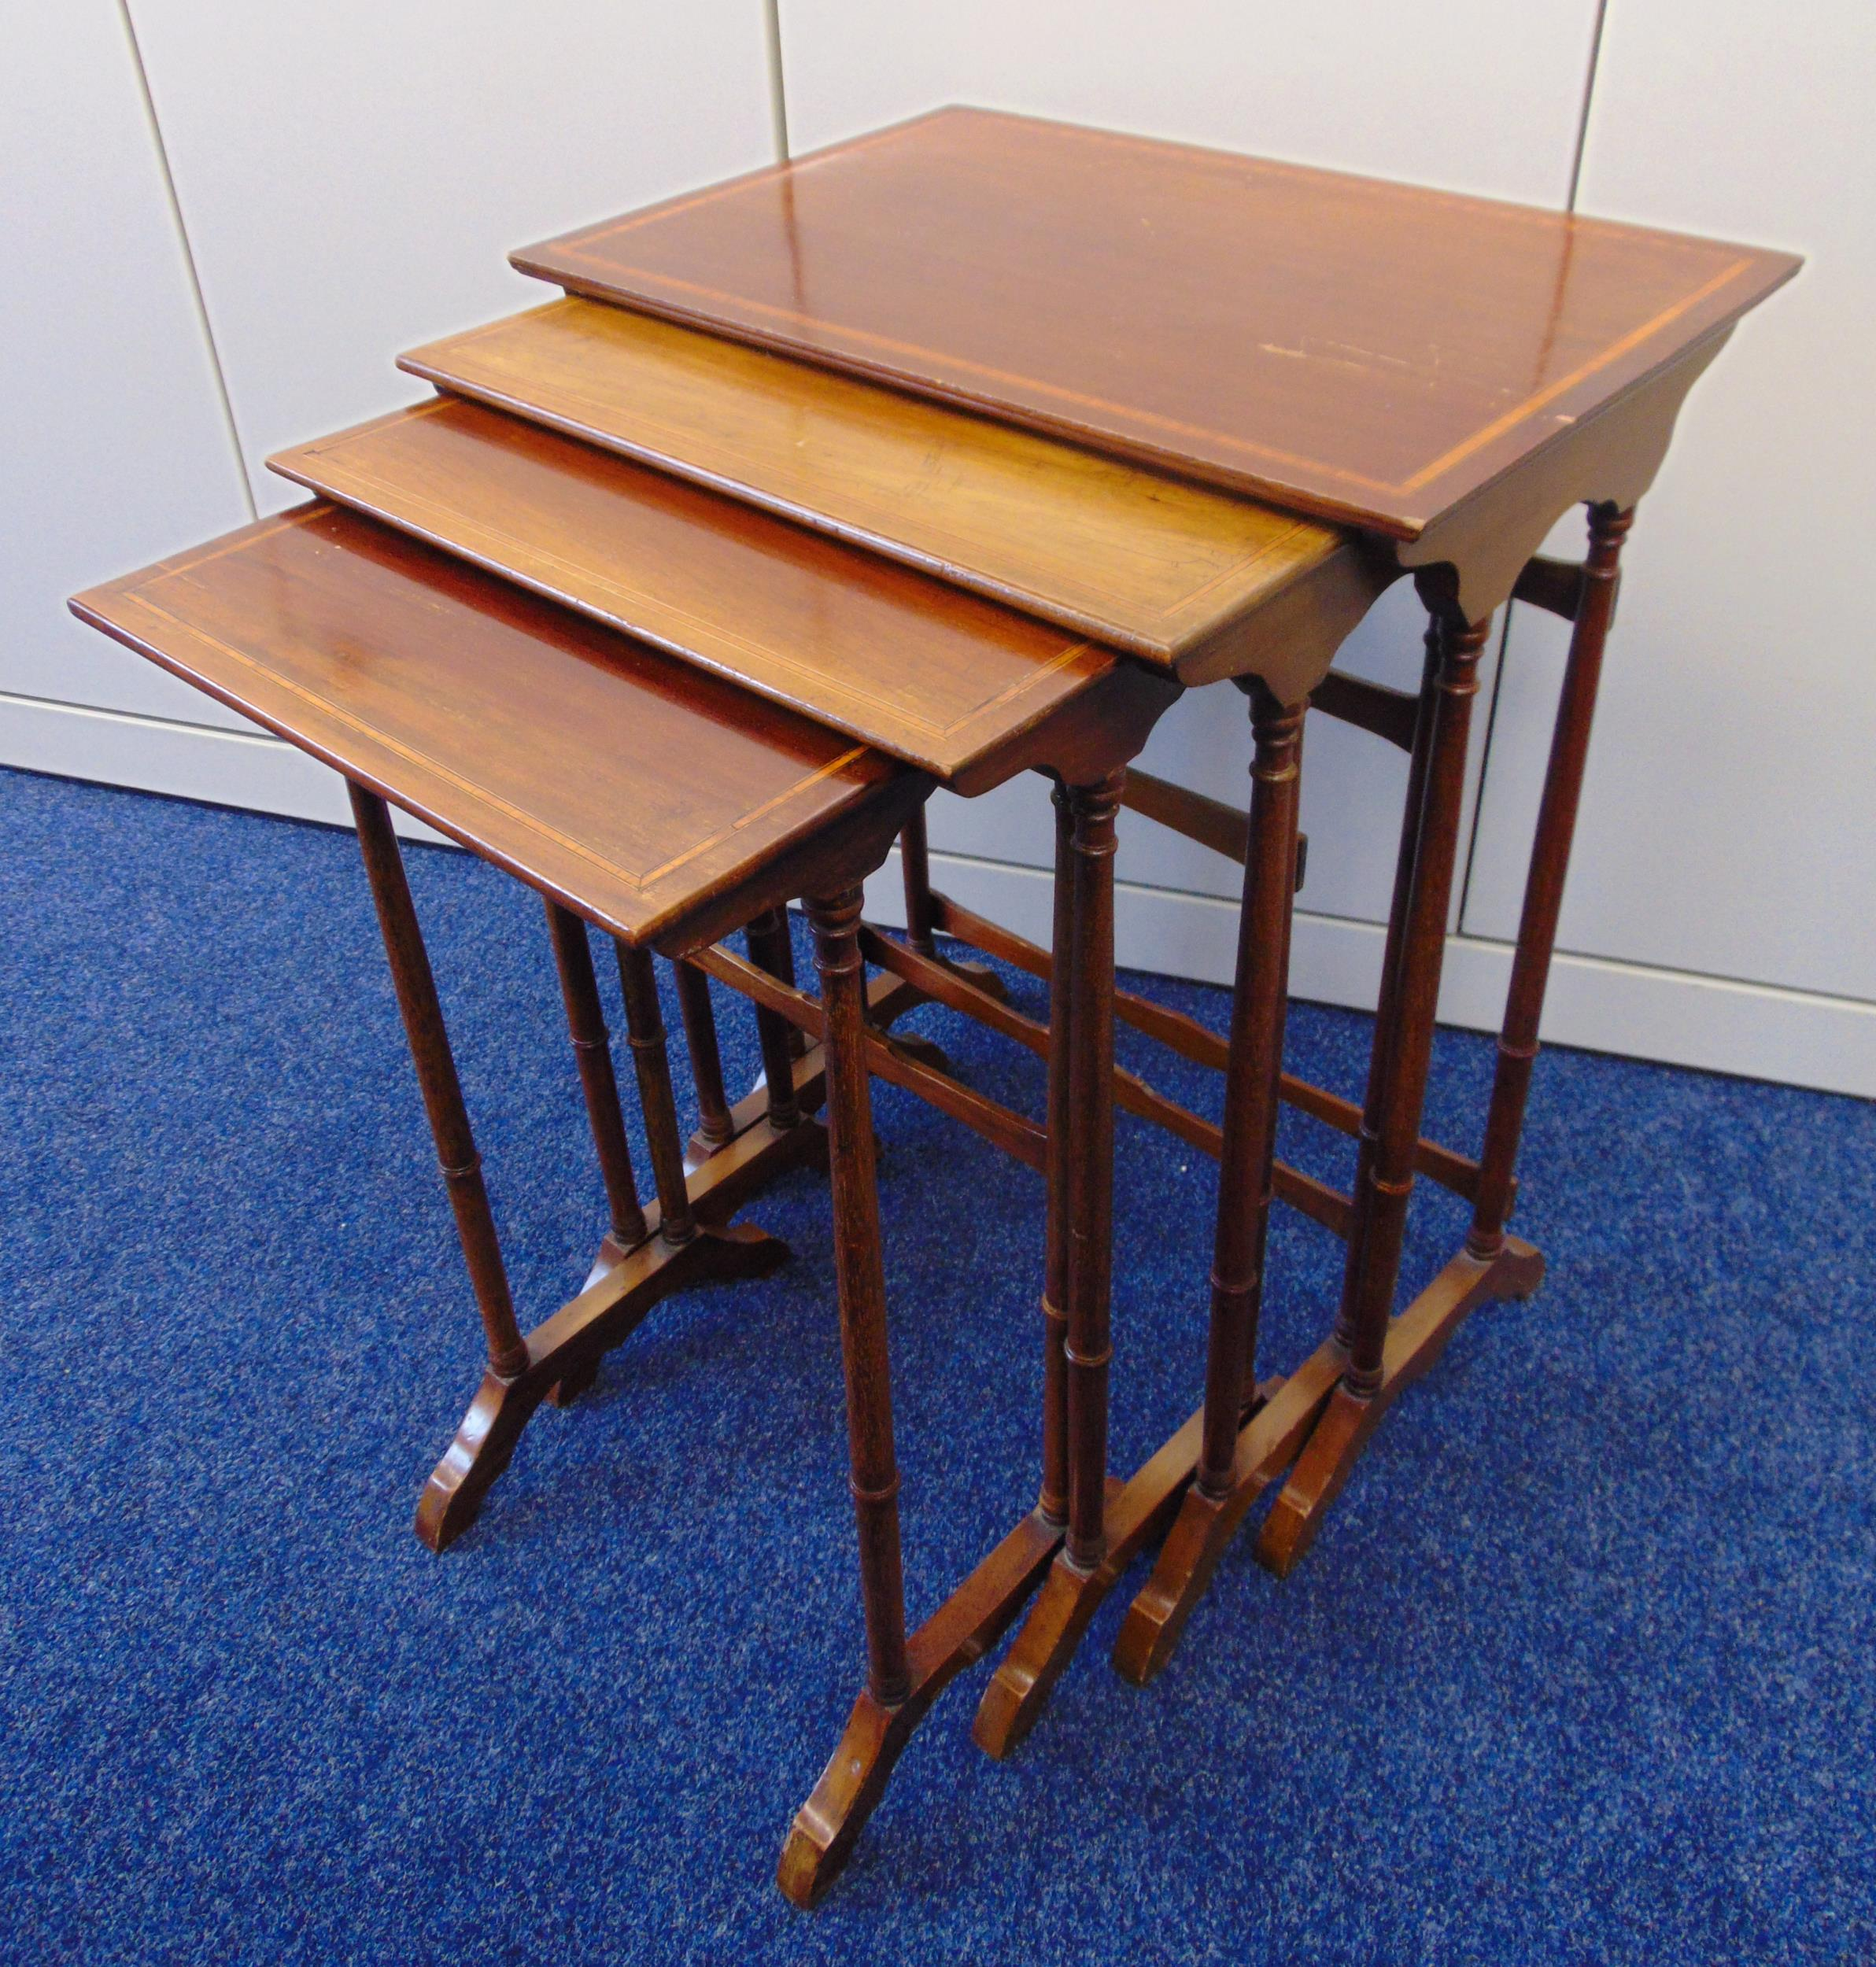 A nest of four rectangular tables inset with satinwood banding on scroll supports, 68.5 x 35.5 x